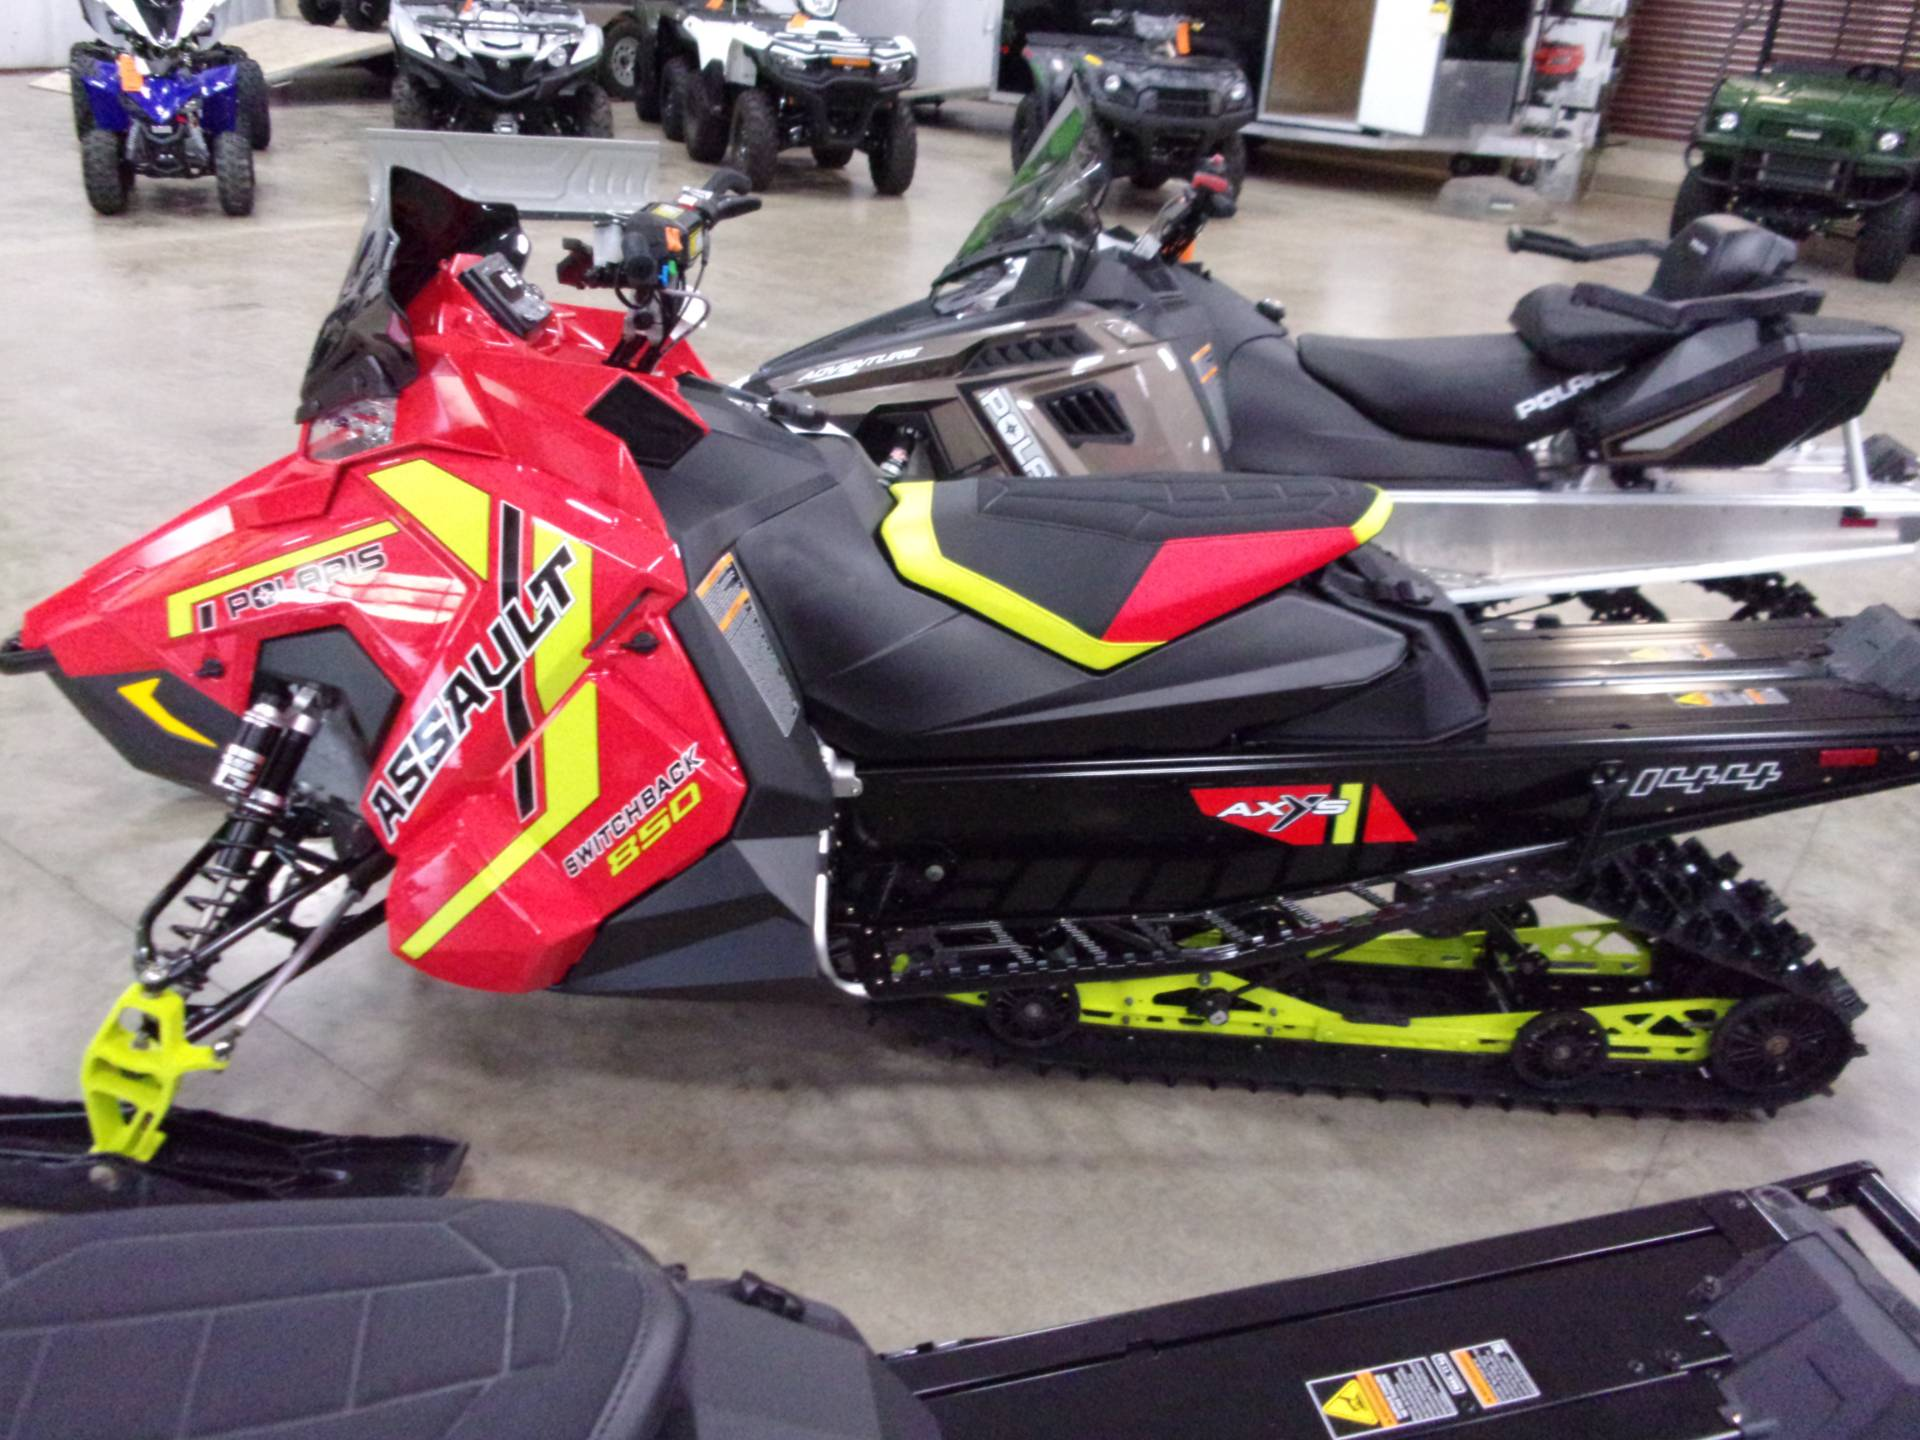 2021 Polaris 850 Switchback Assault 144 Factory Choice in Belvidere, Illinois - Photo 2